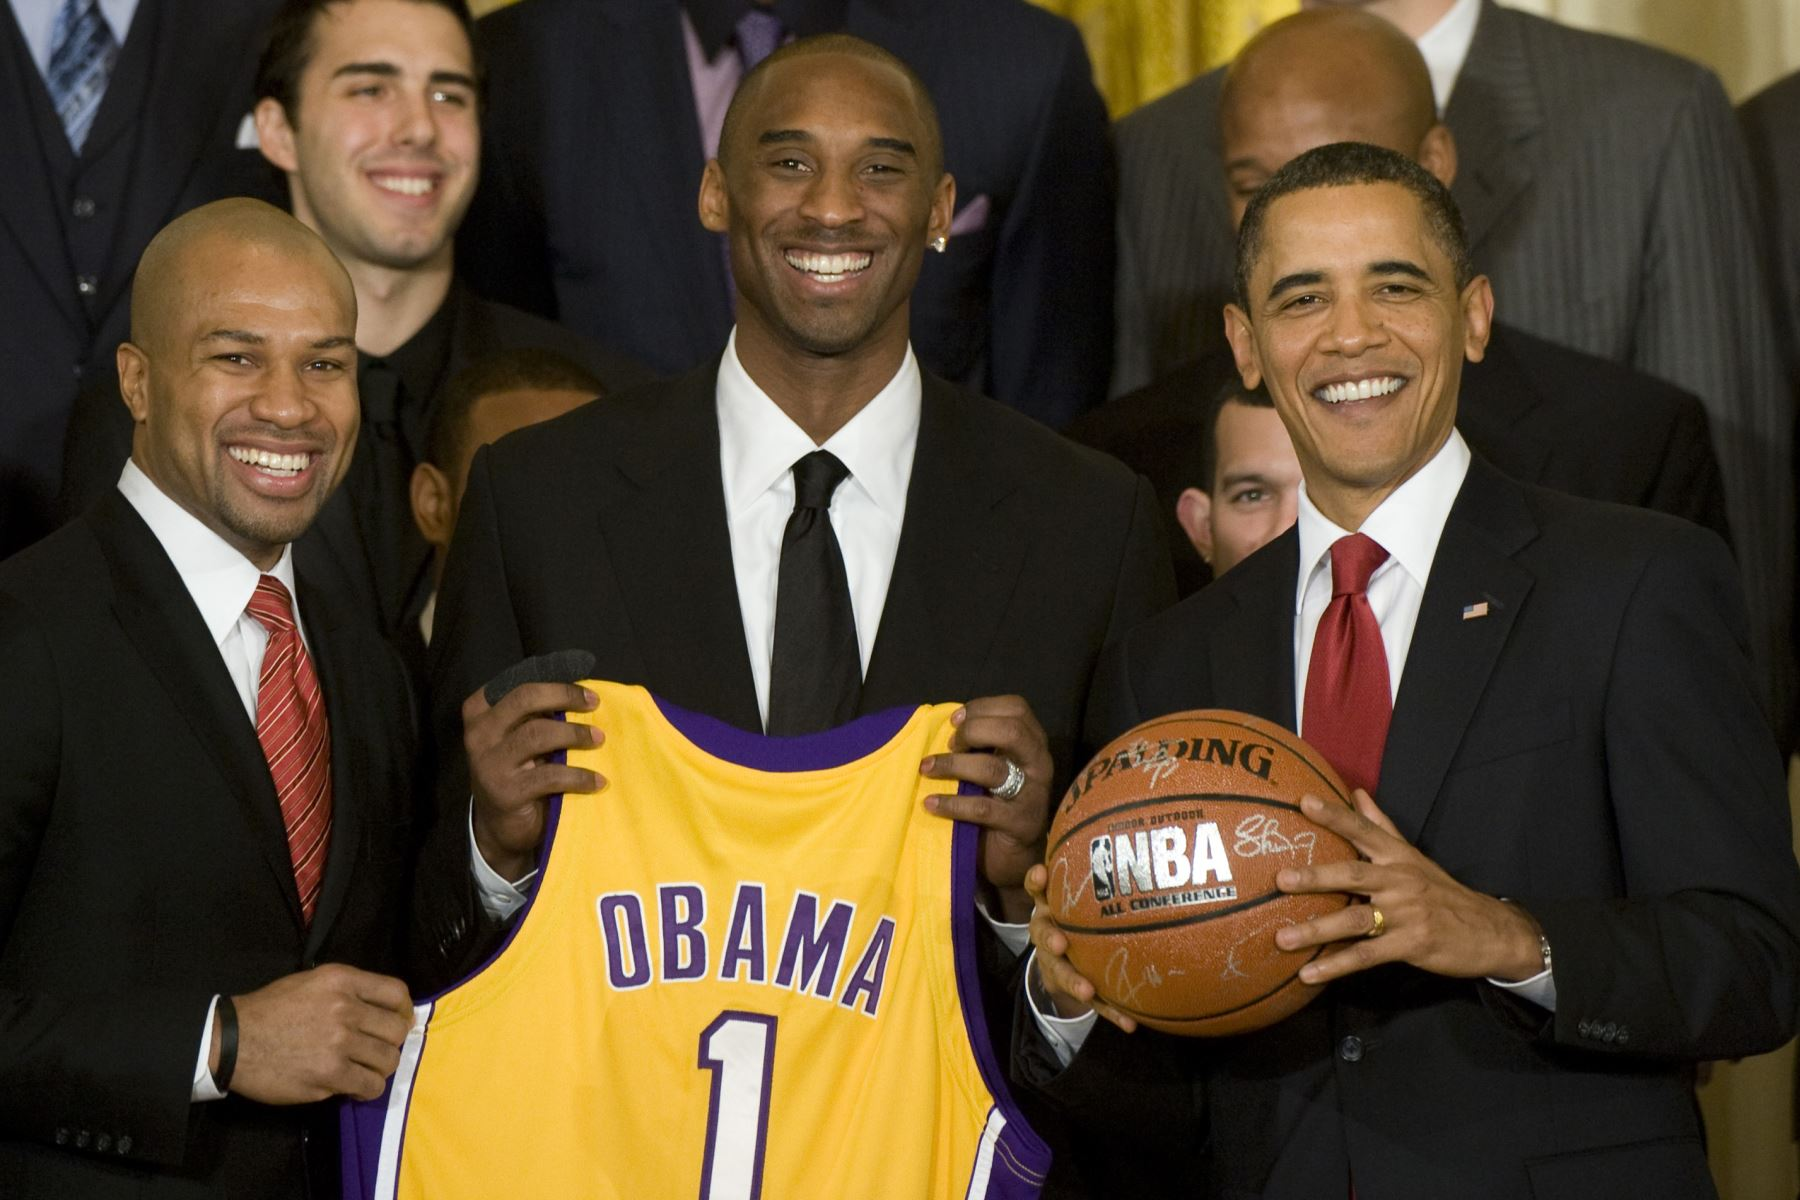 Evento con el campeón de la NBA 2008-2009 Los Angeles Lakers en la Casa Blanca en Washington, DC, 25 de enero de 2010. Foto: AFP